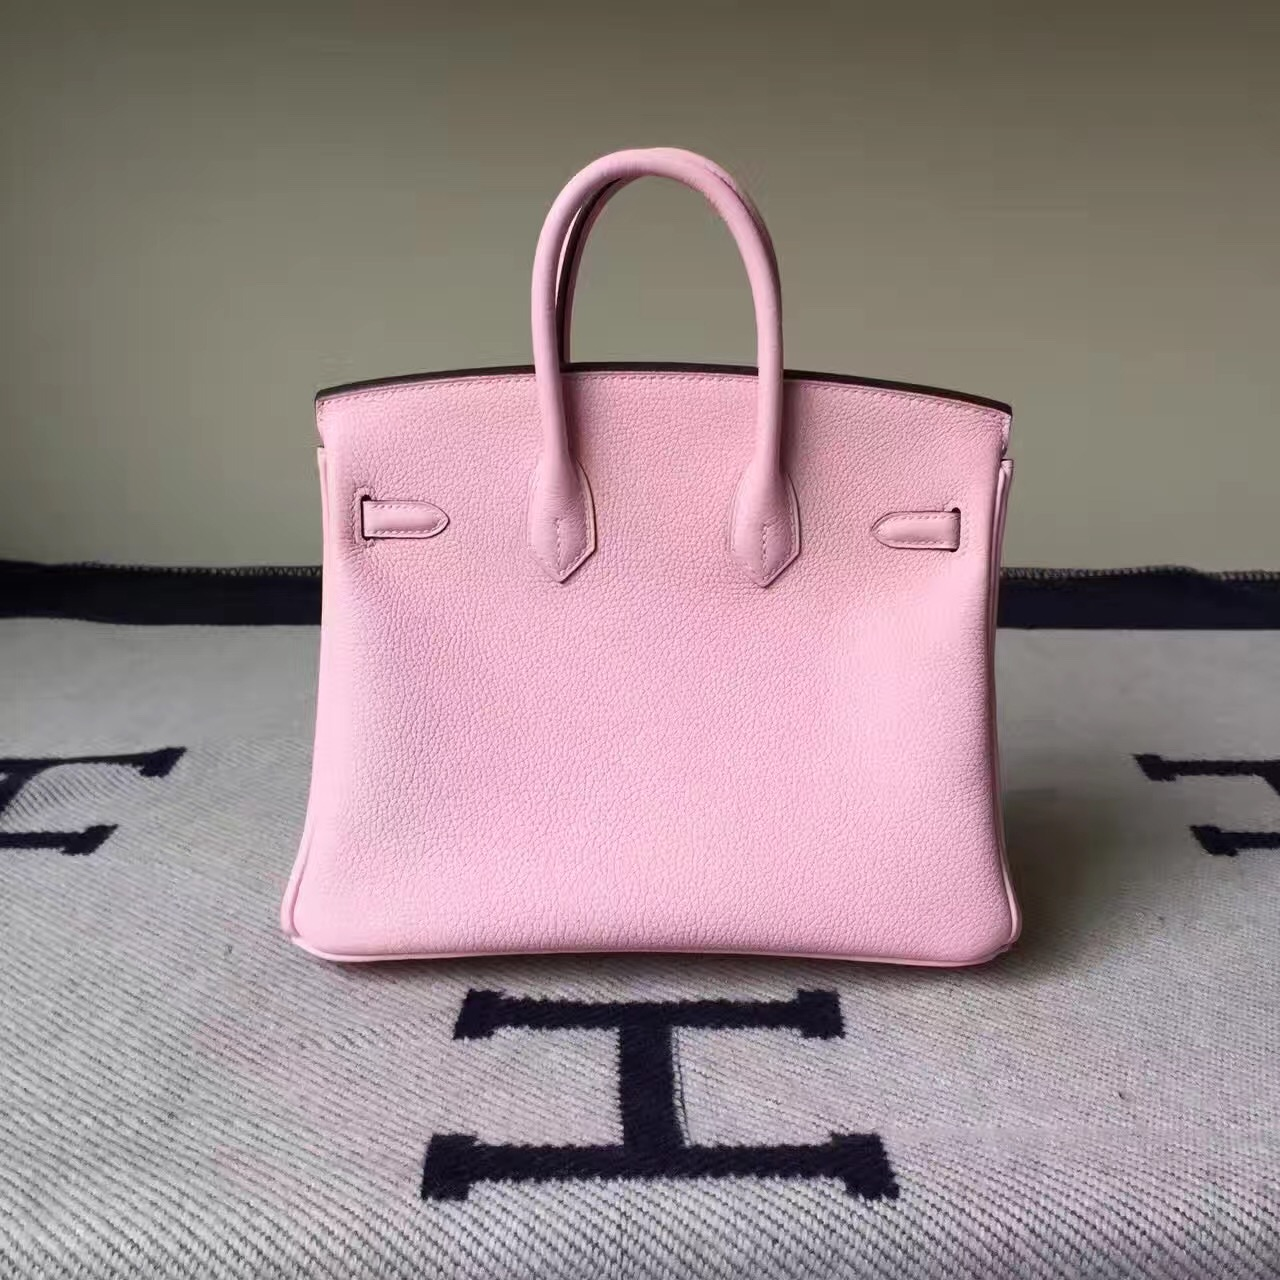 Sale Hermes 3Q Rose Sakura Togo Calfskin Leather Birkin Bag 25cm